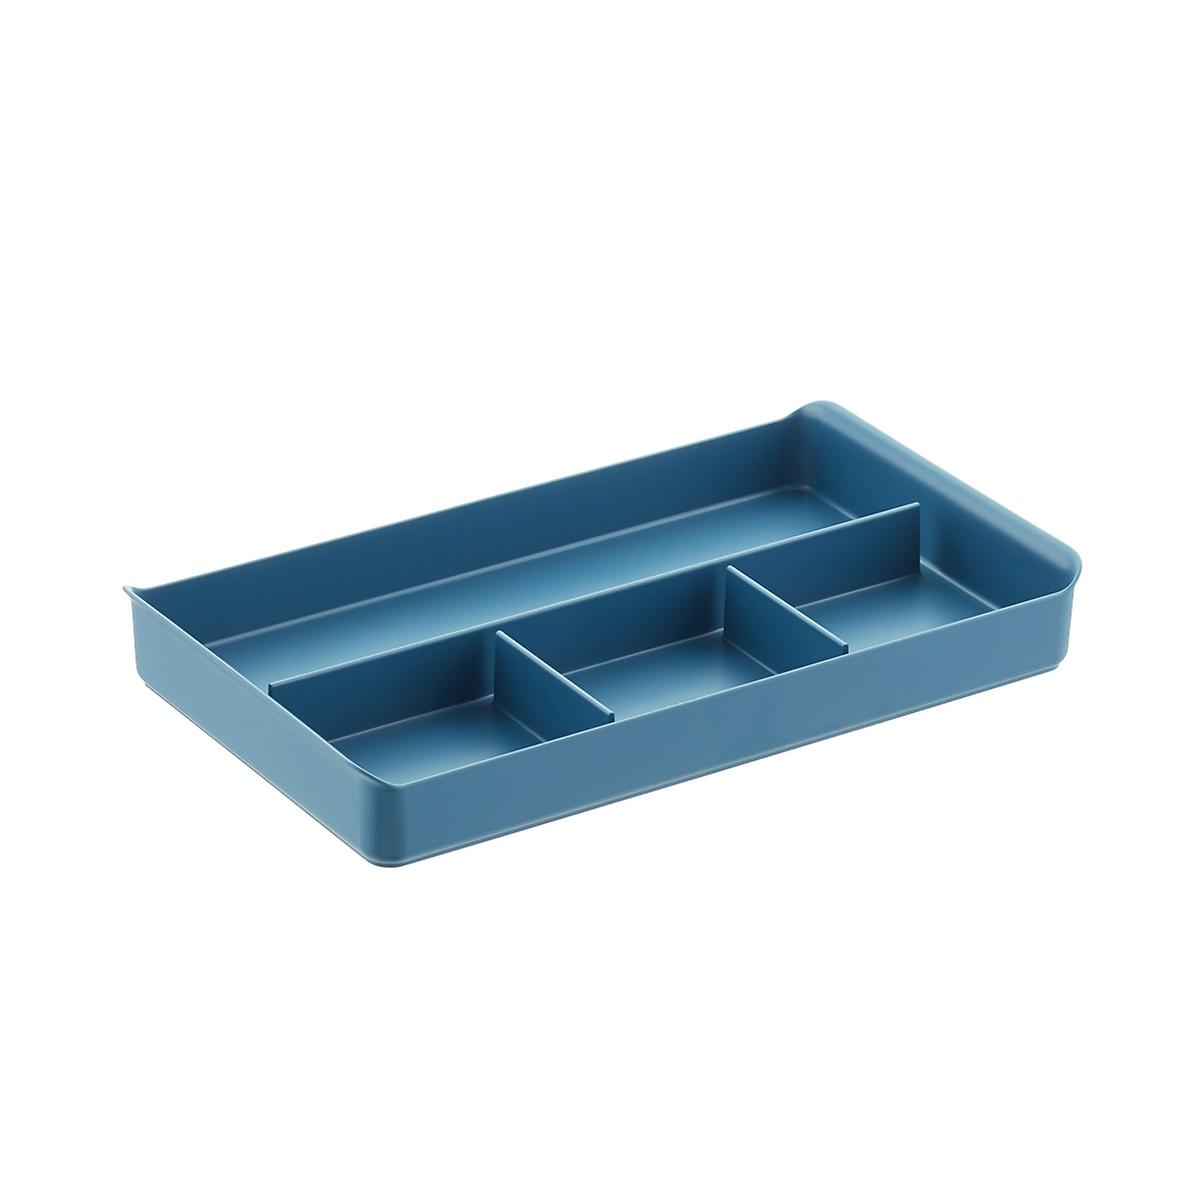 Slate Blue Poppin File Cabinet Organizer The Container Store